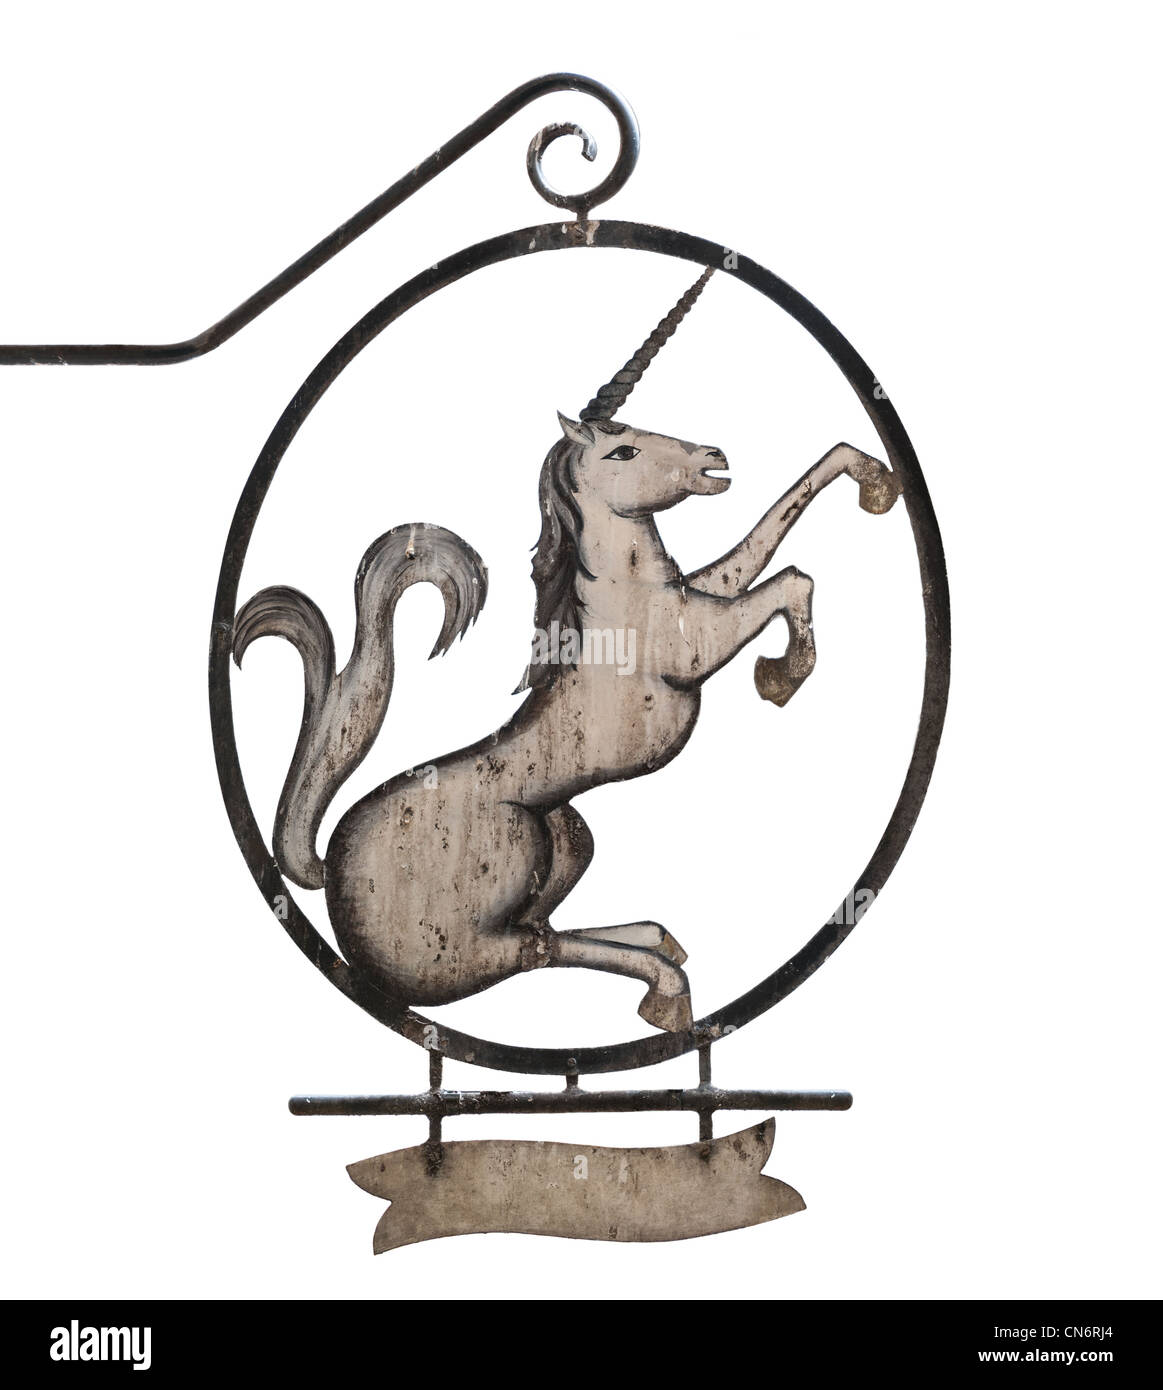 Old medieval sign of tavern, pub, bar or shop depicting unicorn. Isolated on white background, place for text under - Stock Image